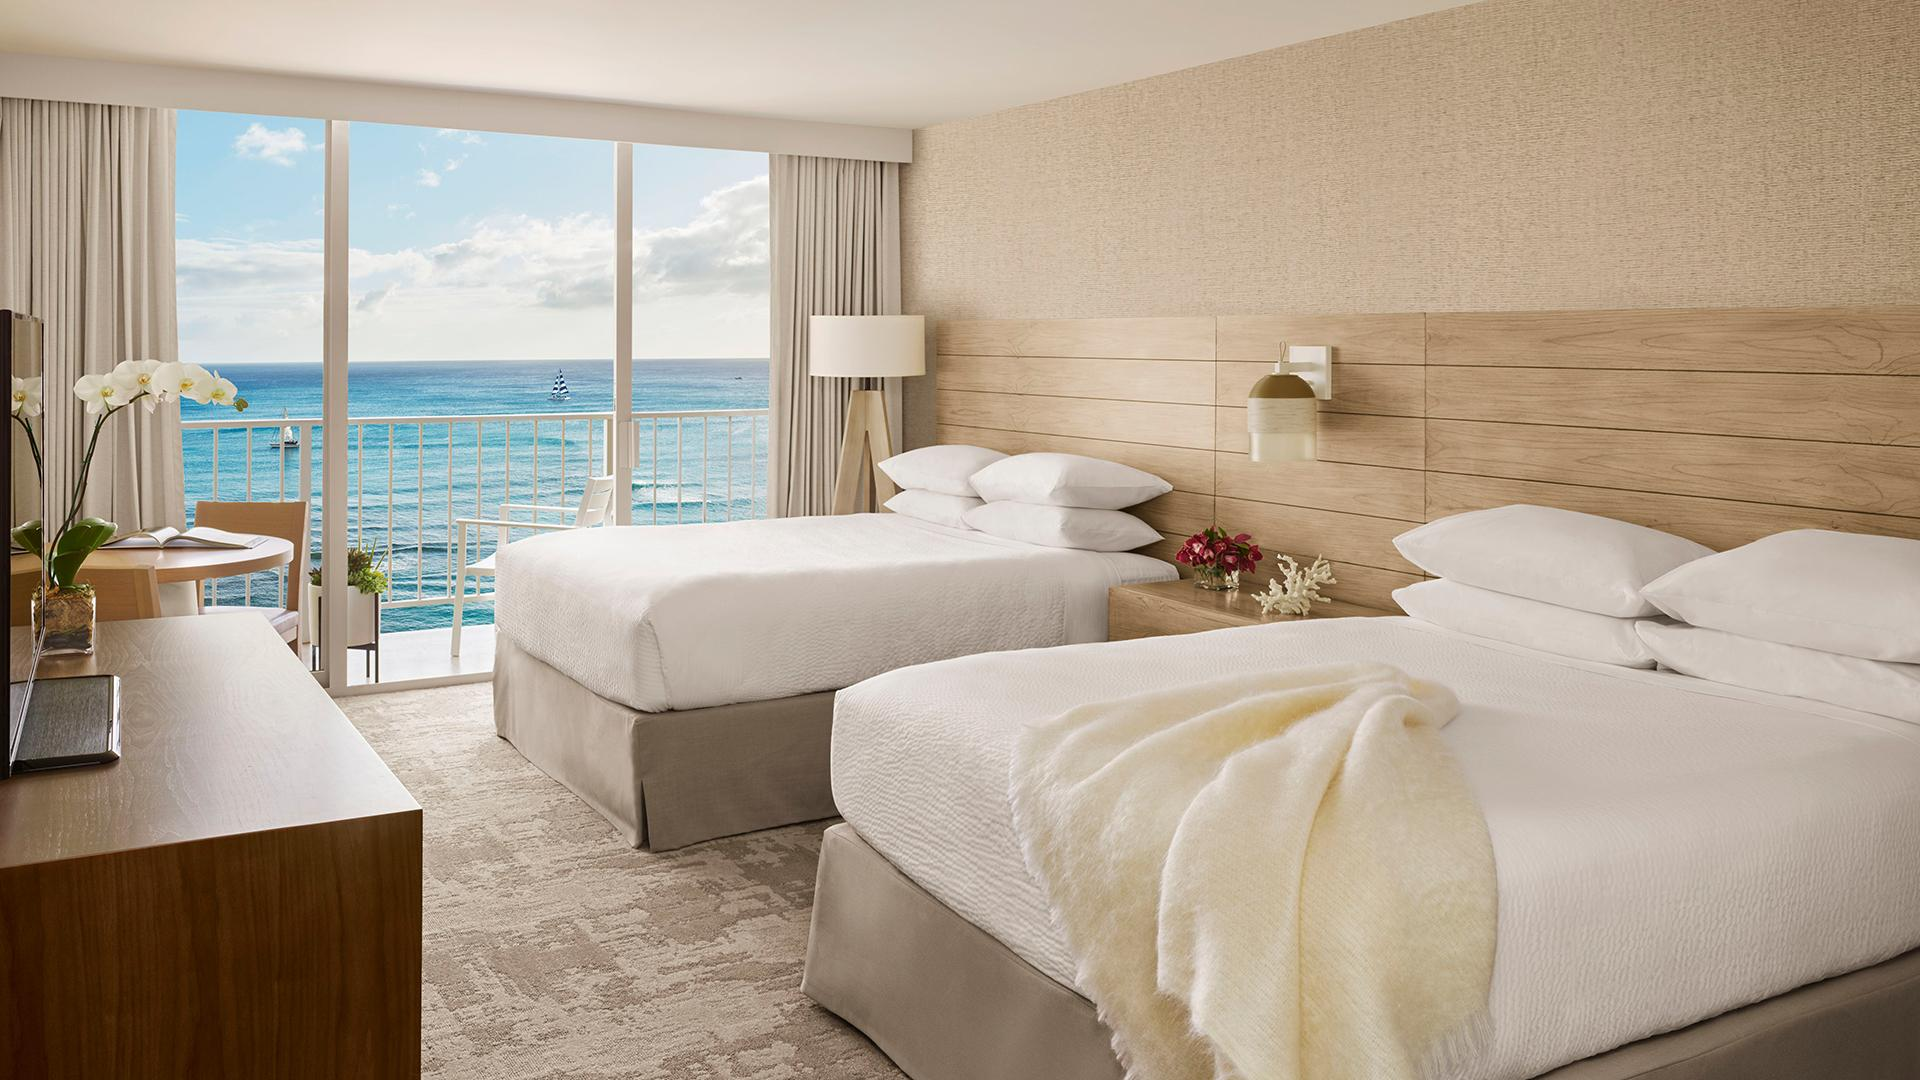 Premier Oceanfront Double Queen image 1 at 'Alohilani Resort Waikiki Beach by Honolulu County, Hawaii, United States